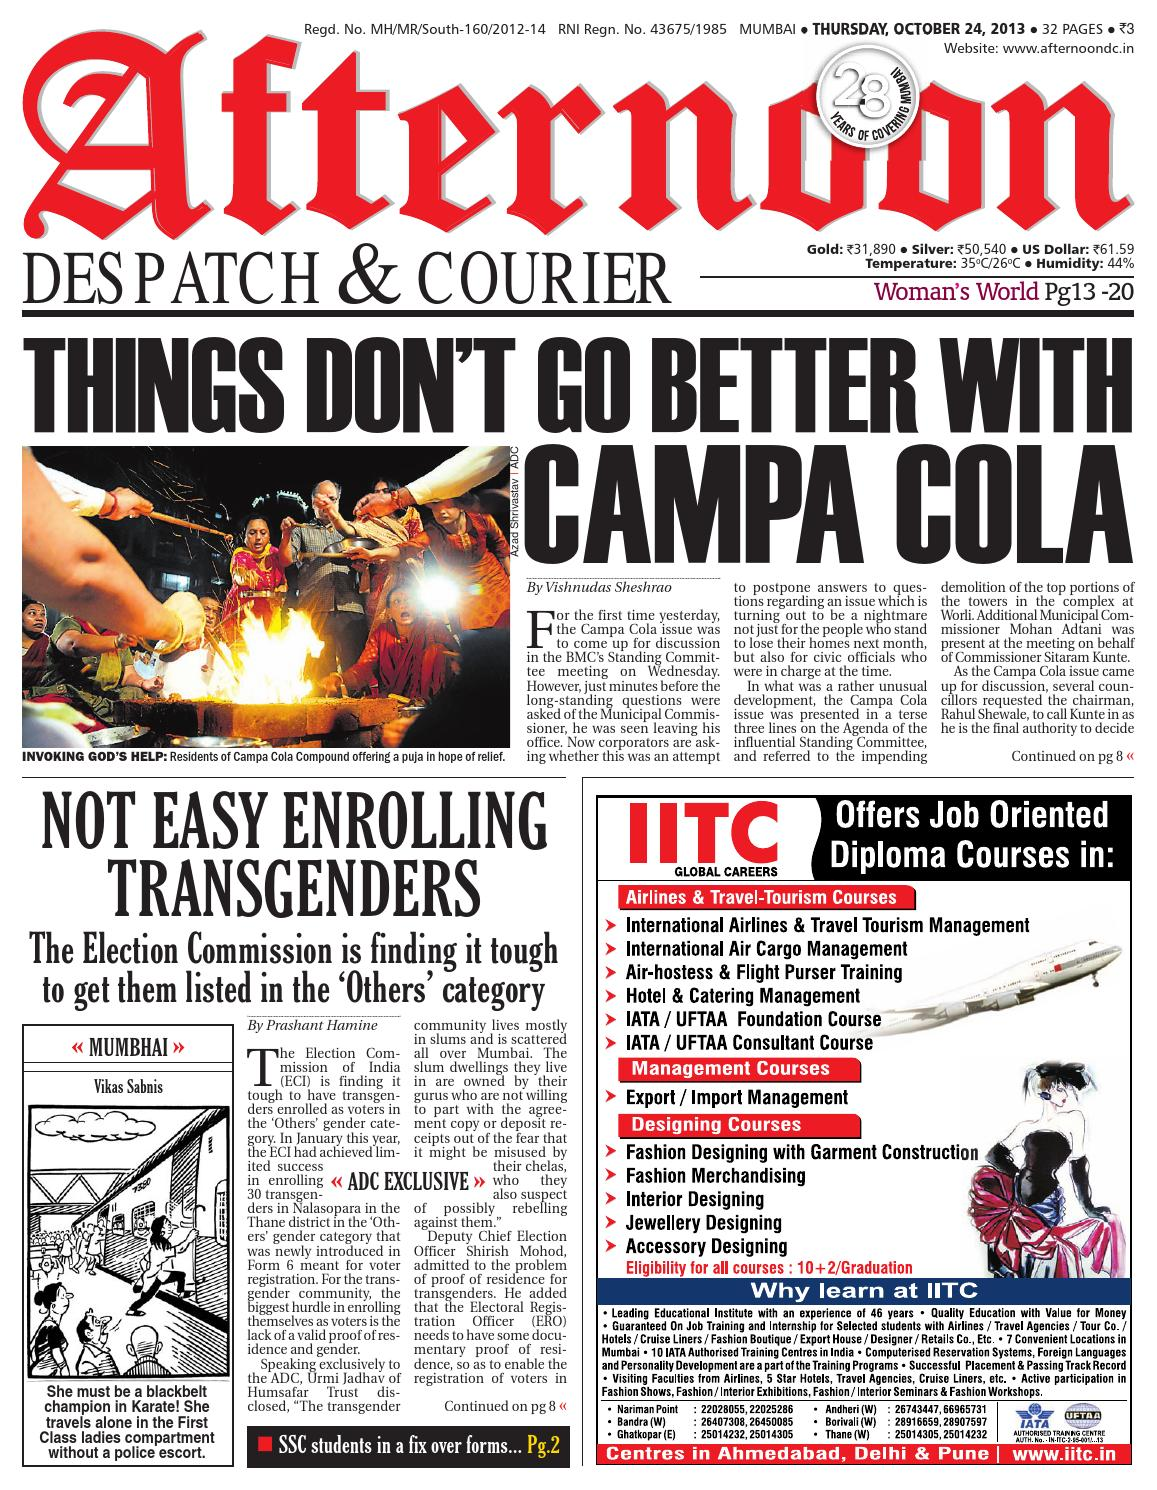 Adc 24 oct 2013 by Afternoon Despatch & Courier - issuu